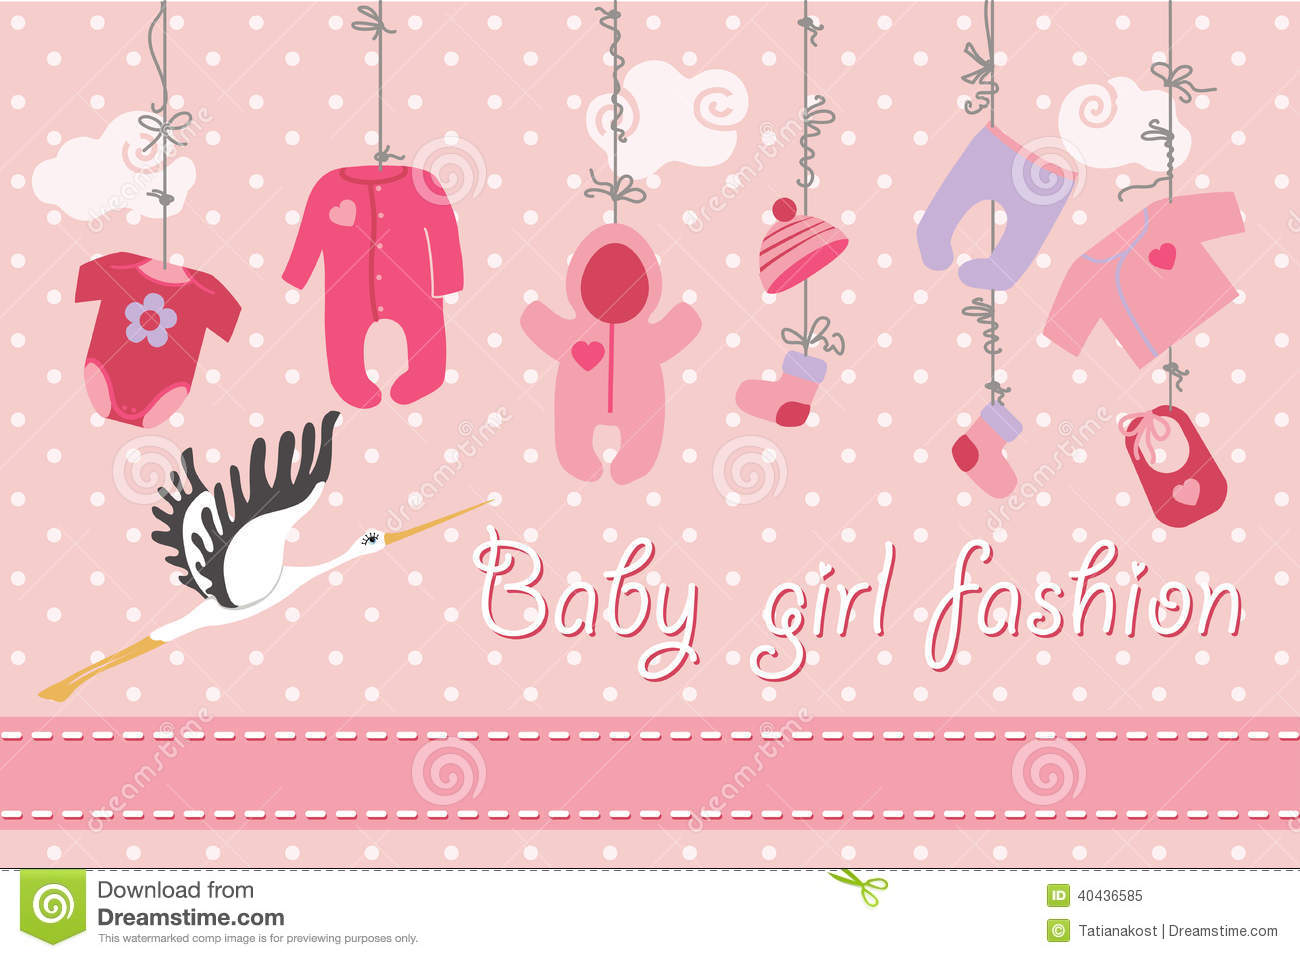 New Greeting For Baby Girl Born